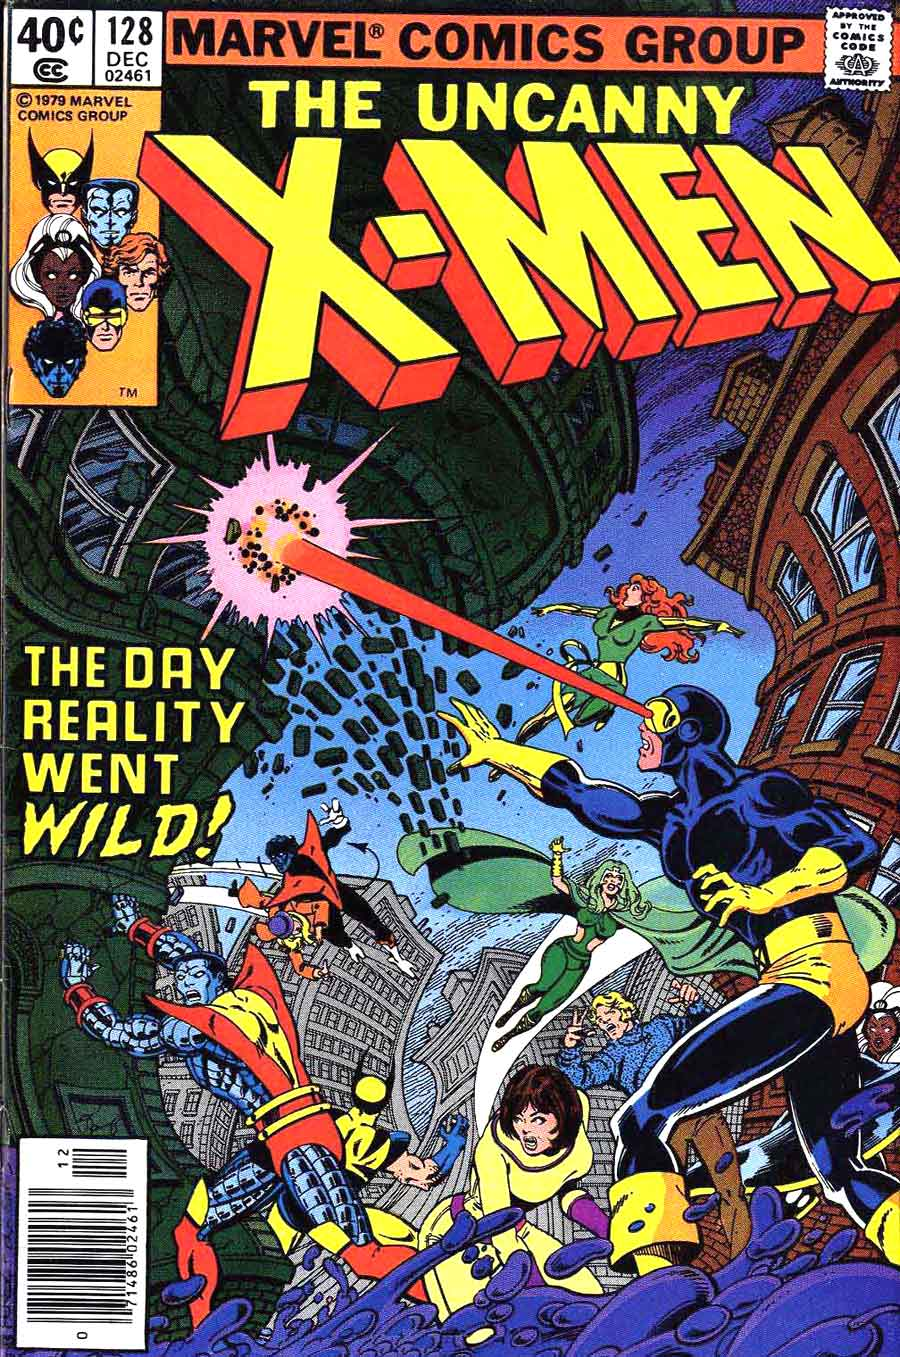 X-men v1 #128 marvel comic book cover art by John Byrne